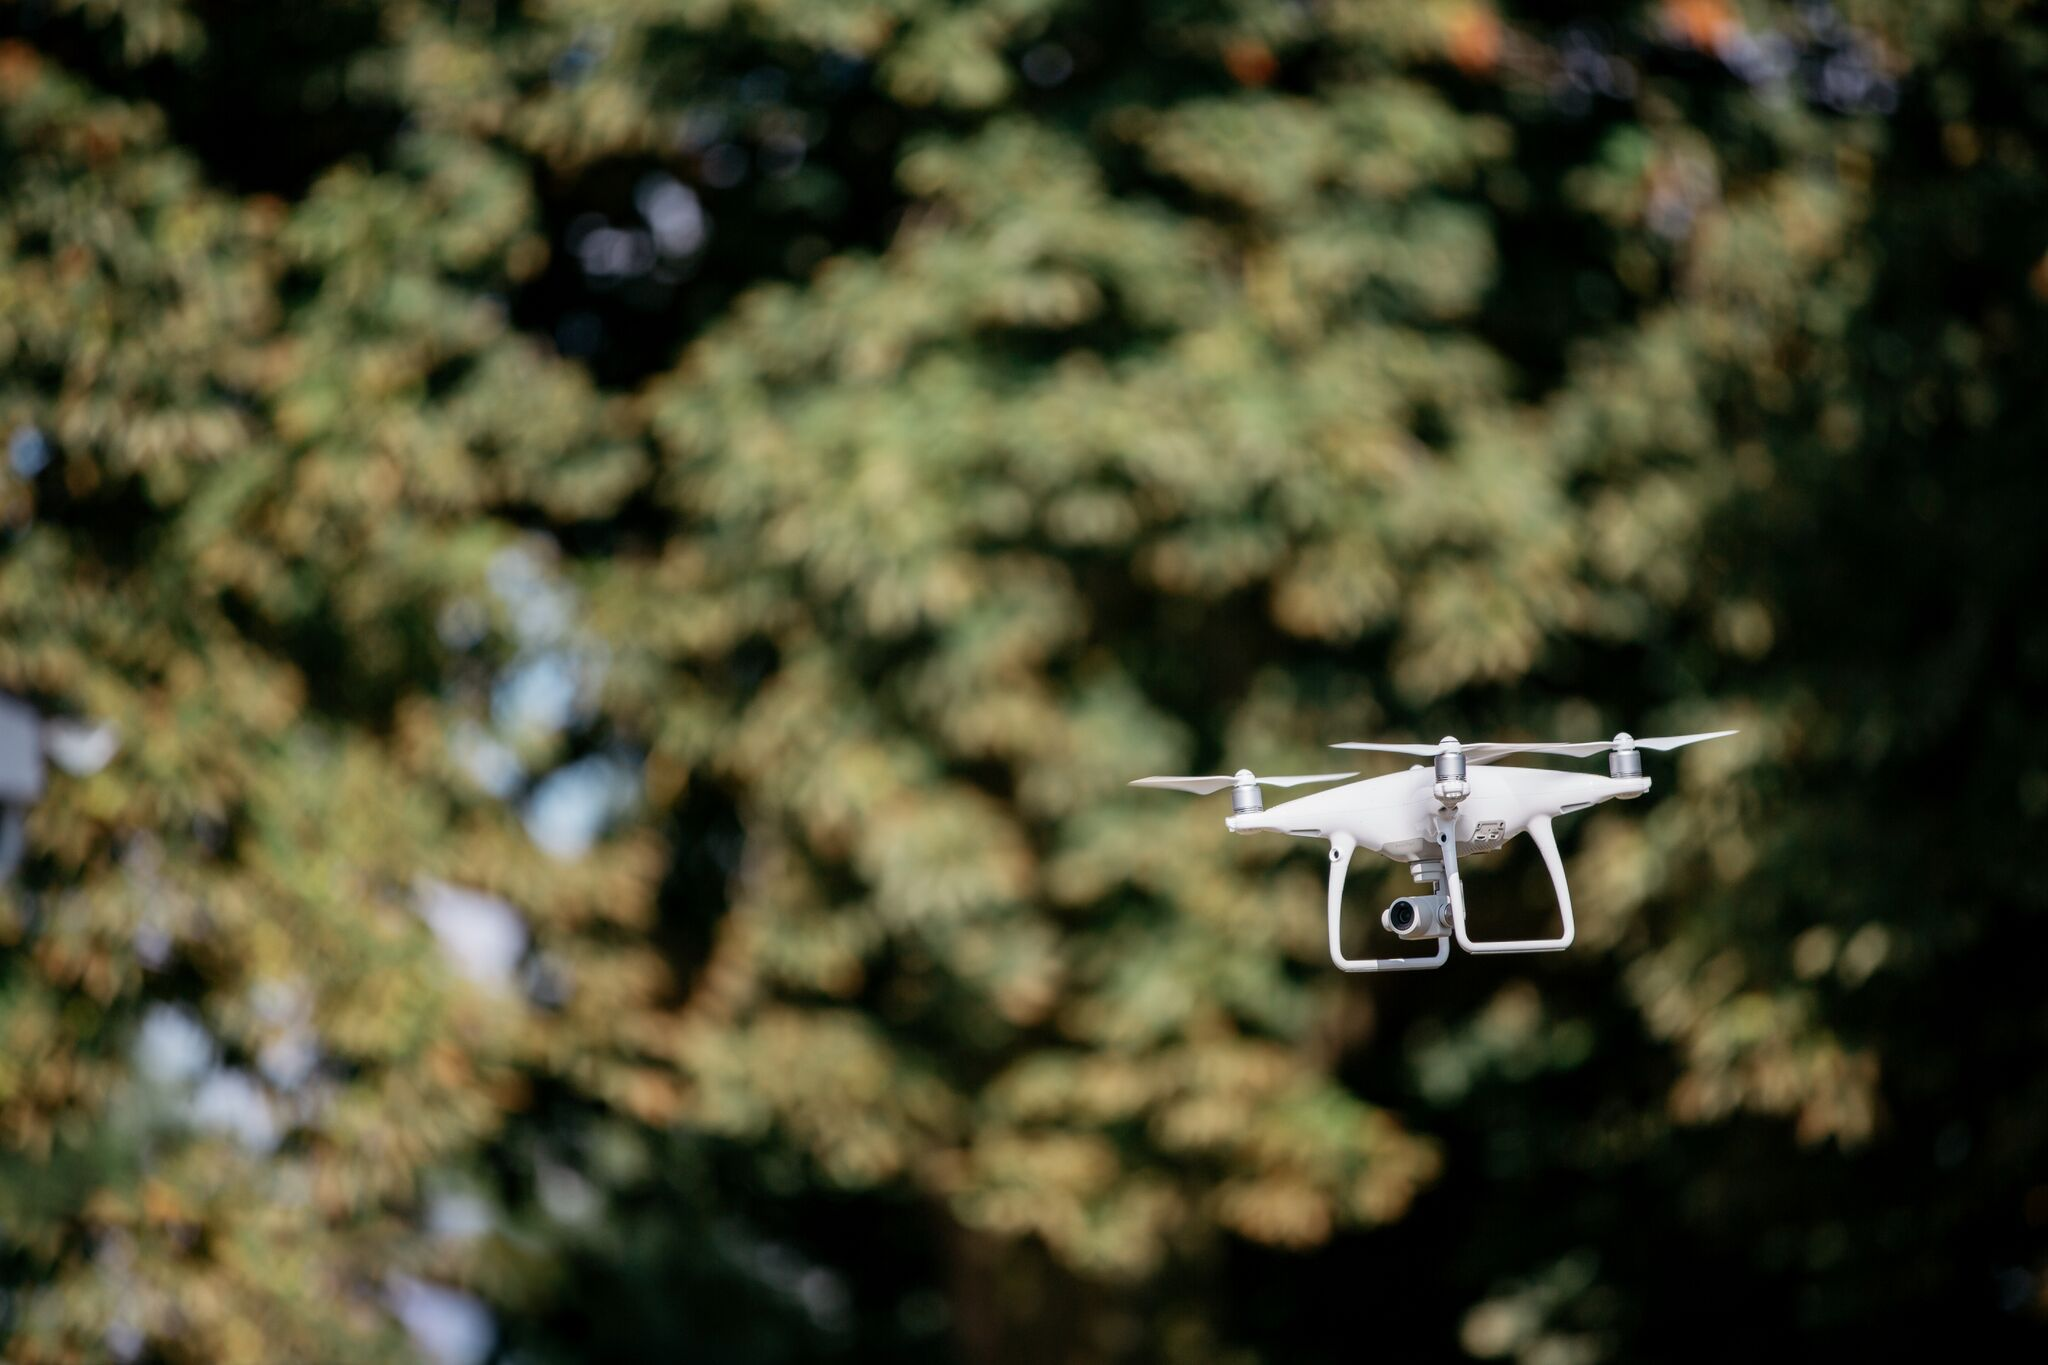 City switches to drone services